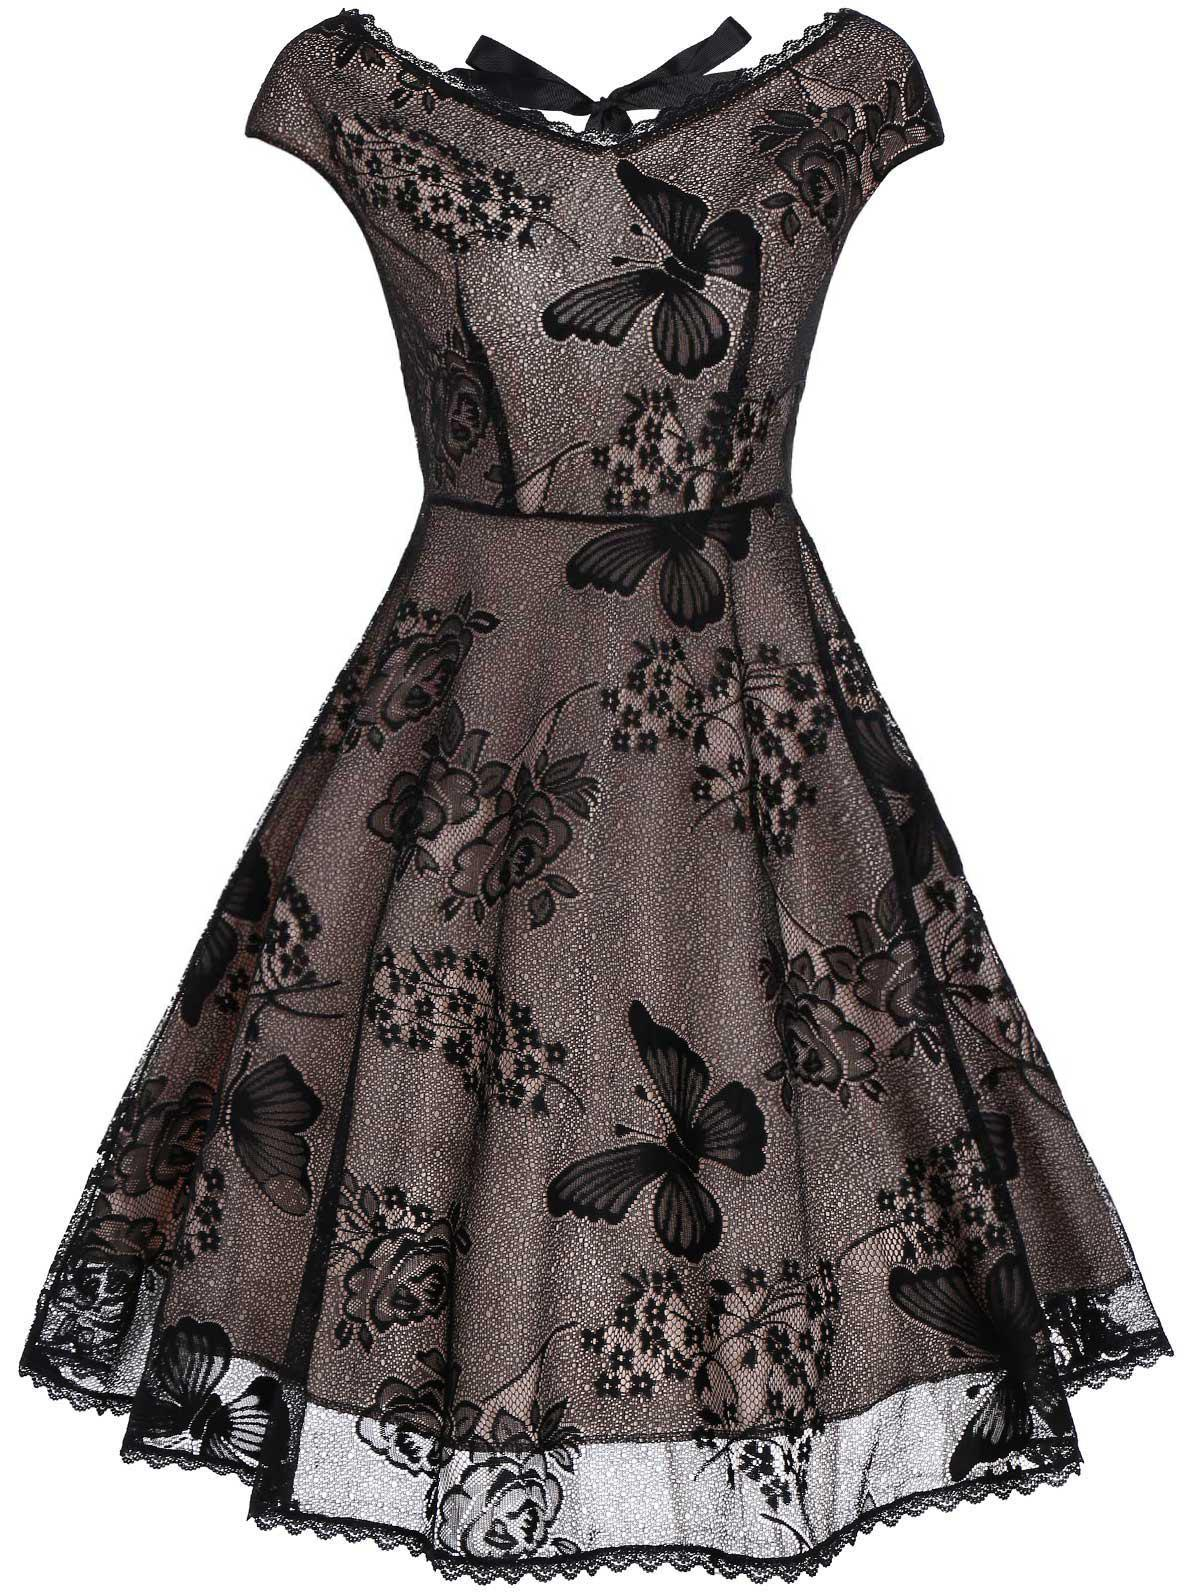 Back Cutout Lace Vintage Fit and Flare DressWOMEN<br><br>Size: XL; Color: BLACK; Style: Vintage; Material: Lace,Polyester; Silhouette: A-Line; Dress Type: Fit and Flare Dress,Overlay Dress; Dresses Length: Mini; Neckline: V-Neck; Sleeve Length: Short Sleeves; Embellishment: Lace,Panel; Pattern Type: Floral; With Belt: No; Season: Summer; Weight: 0.3500kg; Package Contents: 1 x Dress;